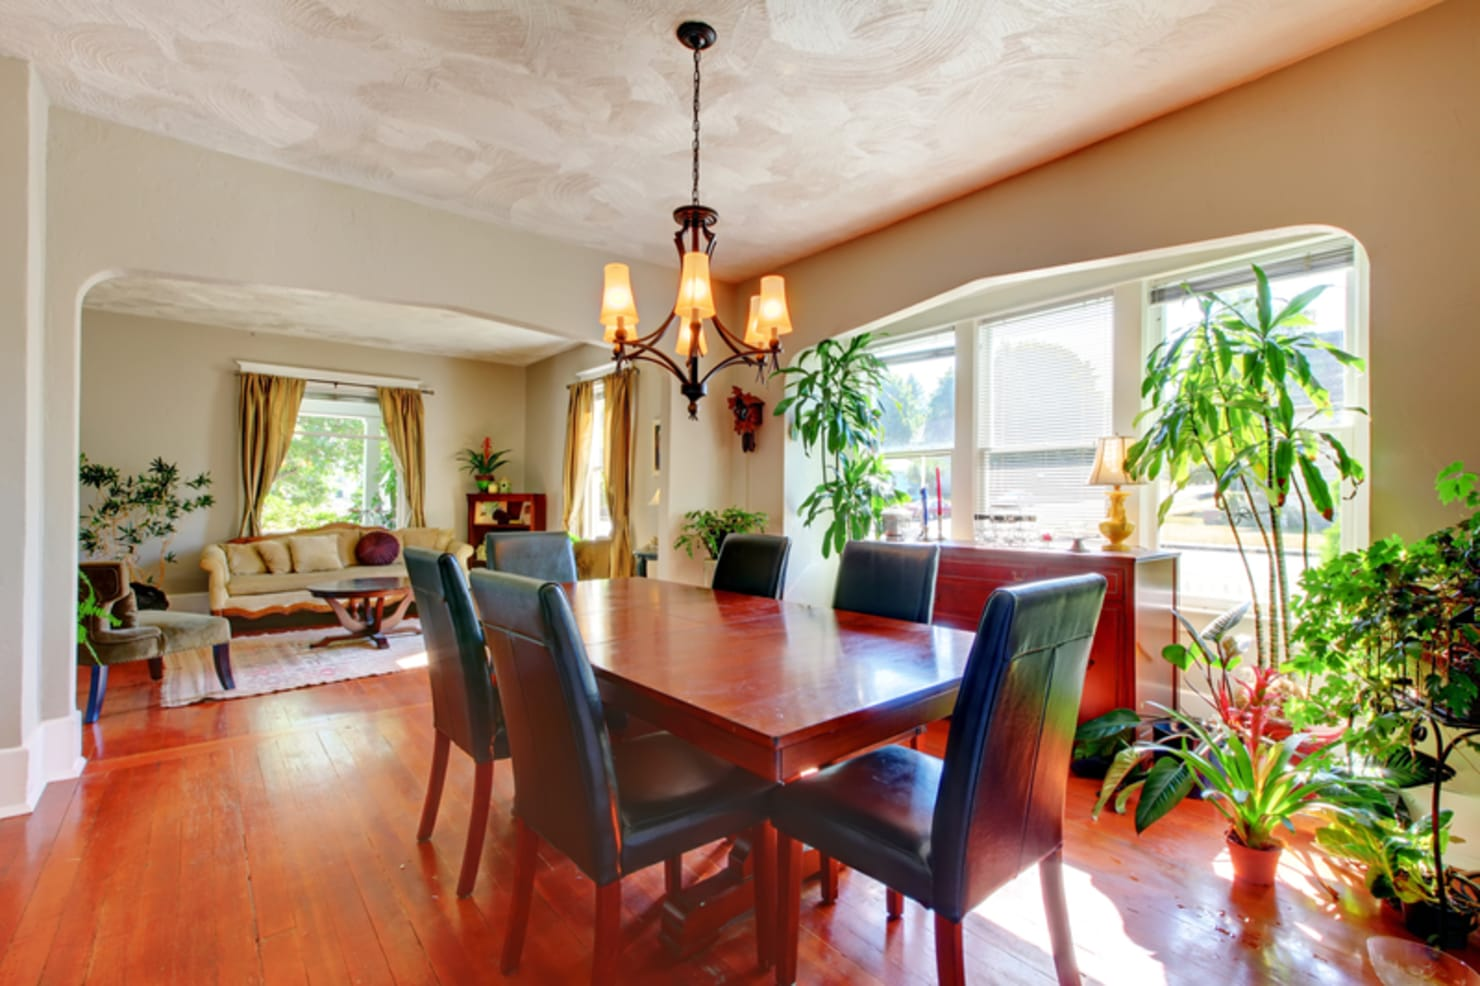 Using plants in your home